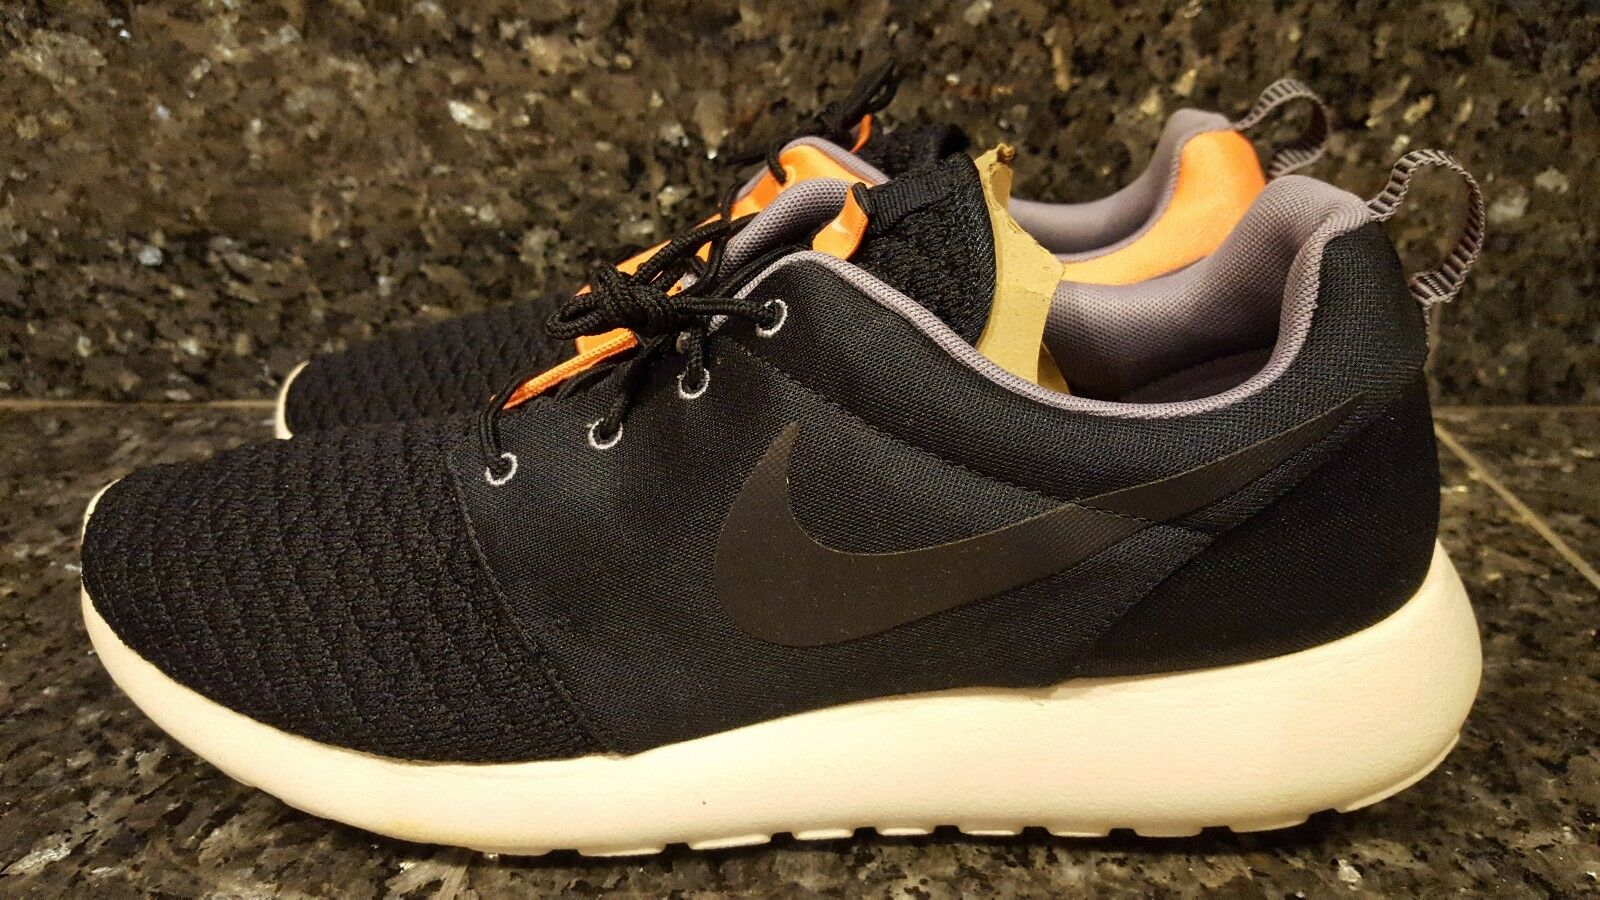 New Men's NIKE Rosherun Premium - 525234 448 Dark Obsidian/Atomic Orange *Rare*